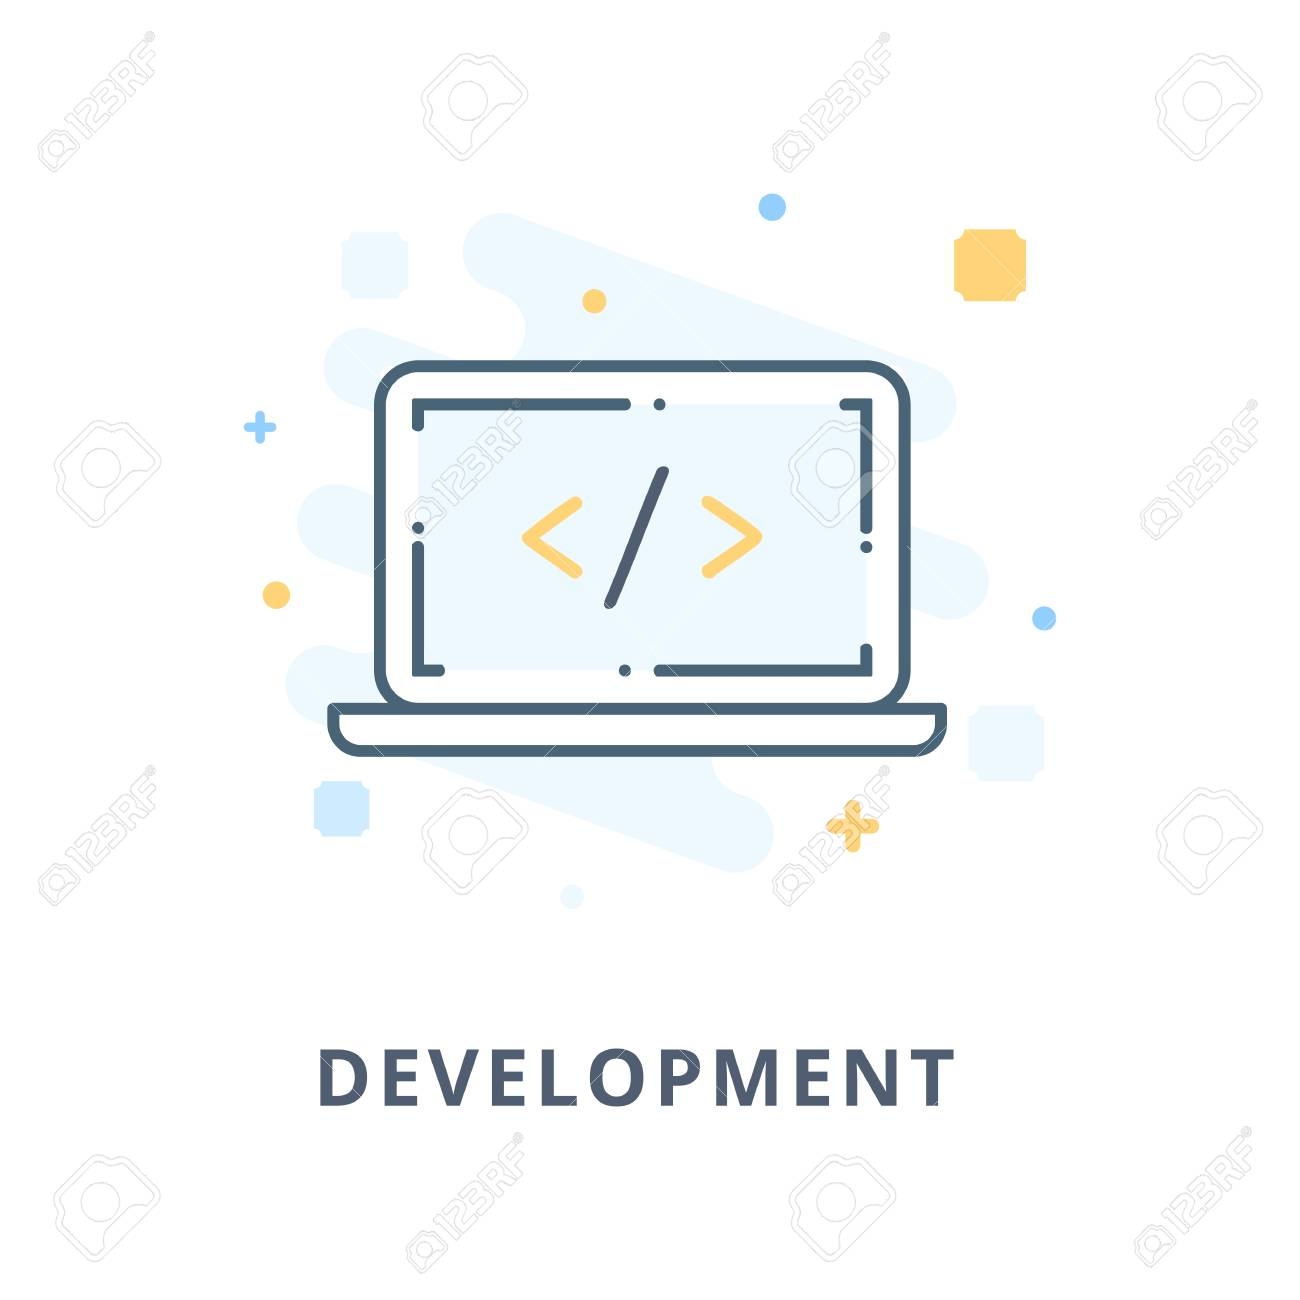 Creative Web Design Development Flat Icon Design Illustration Royalty Free Cliparts Vectors And Stock Illustration Image 57655439